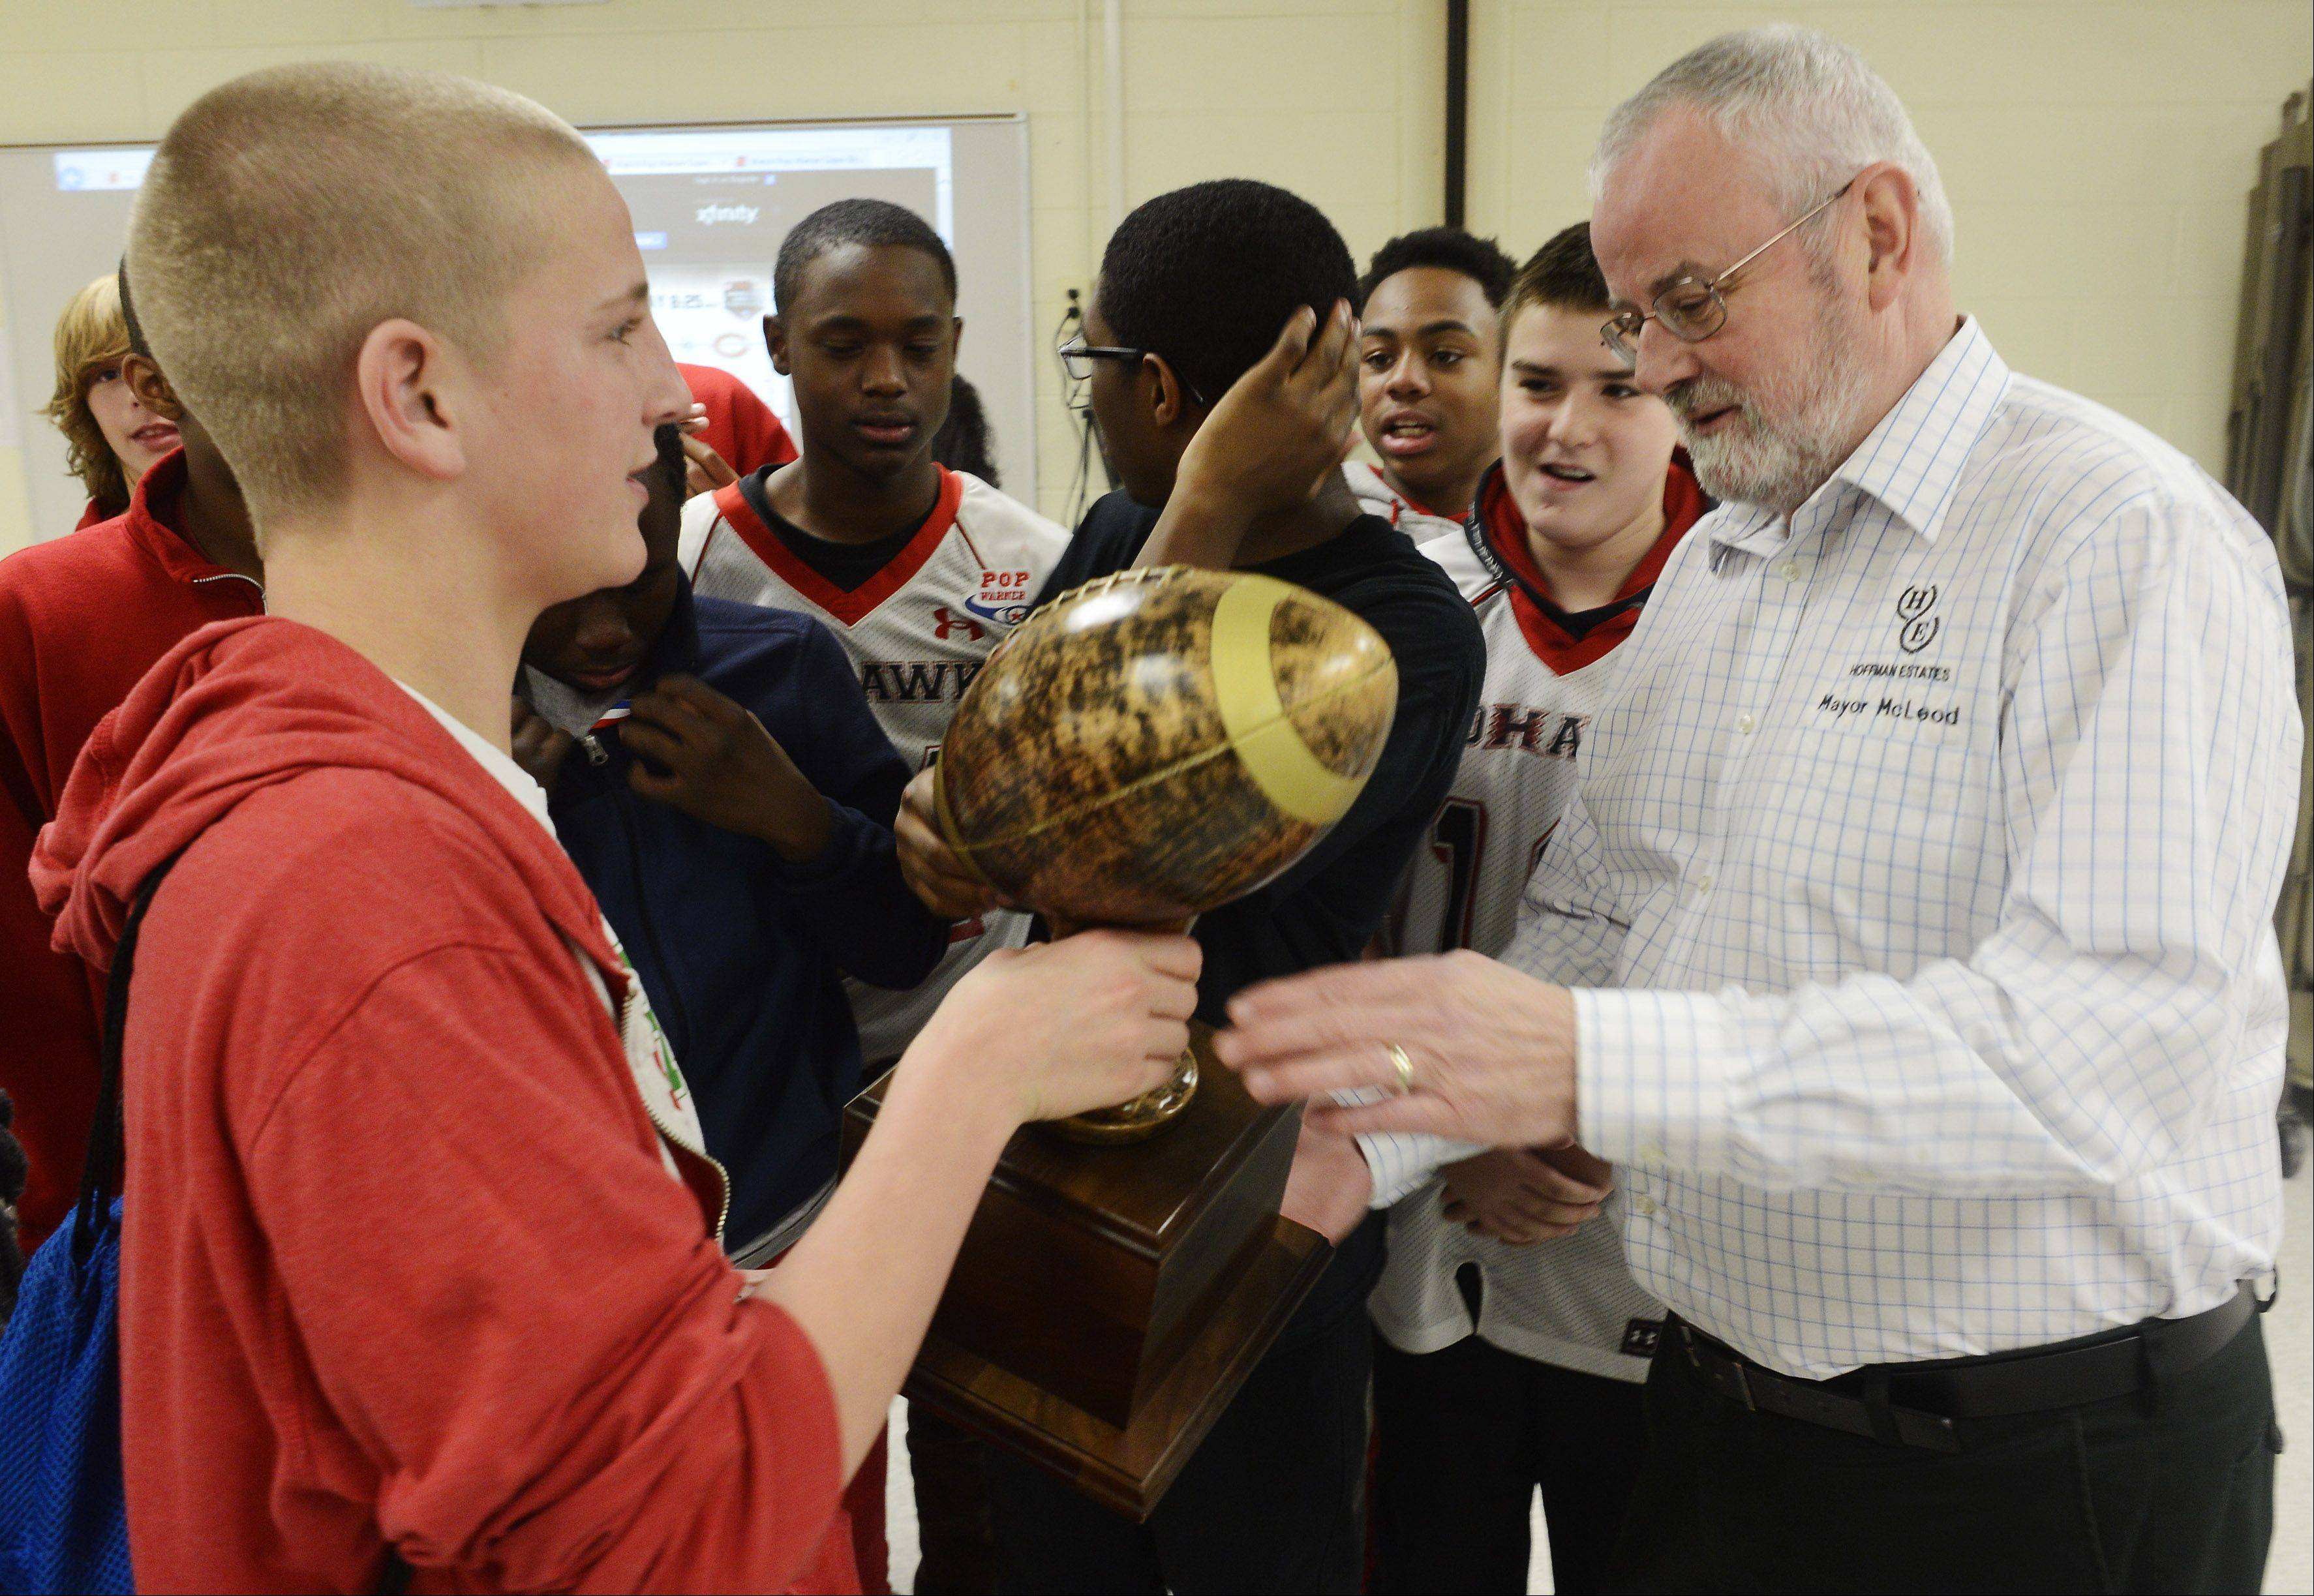 Hoffman Estates Junior Midget quarterback Austin Coalson, 14, of Schaumburg, shows the team's regional championship trophy to Hoffman Estates Mayor William McLeod at Tuesday night's meeting to see who they will face in the national championships at the Pop Warner finals in Orlando.